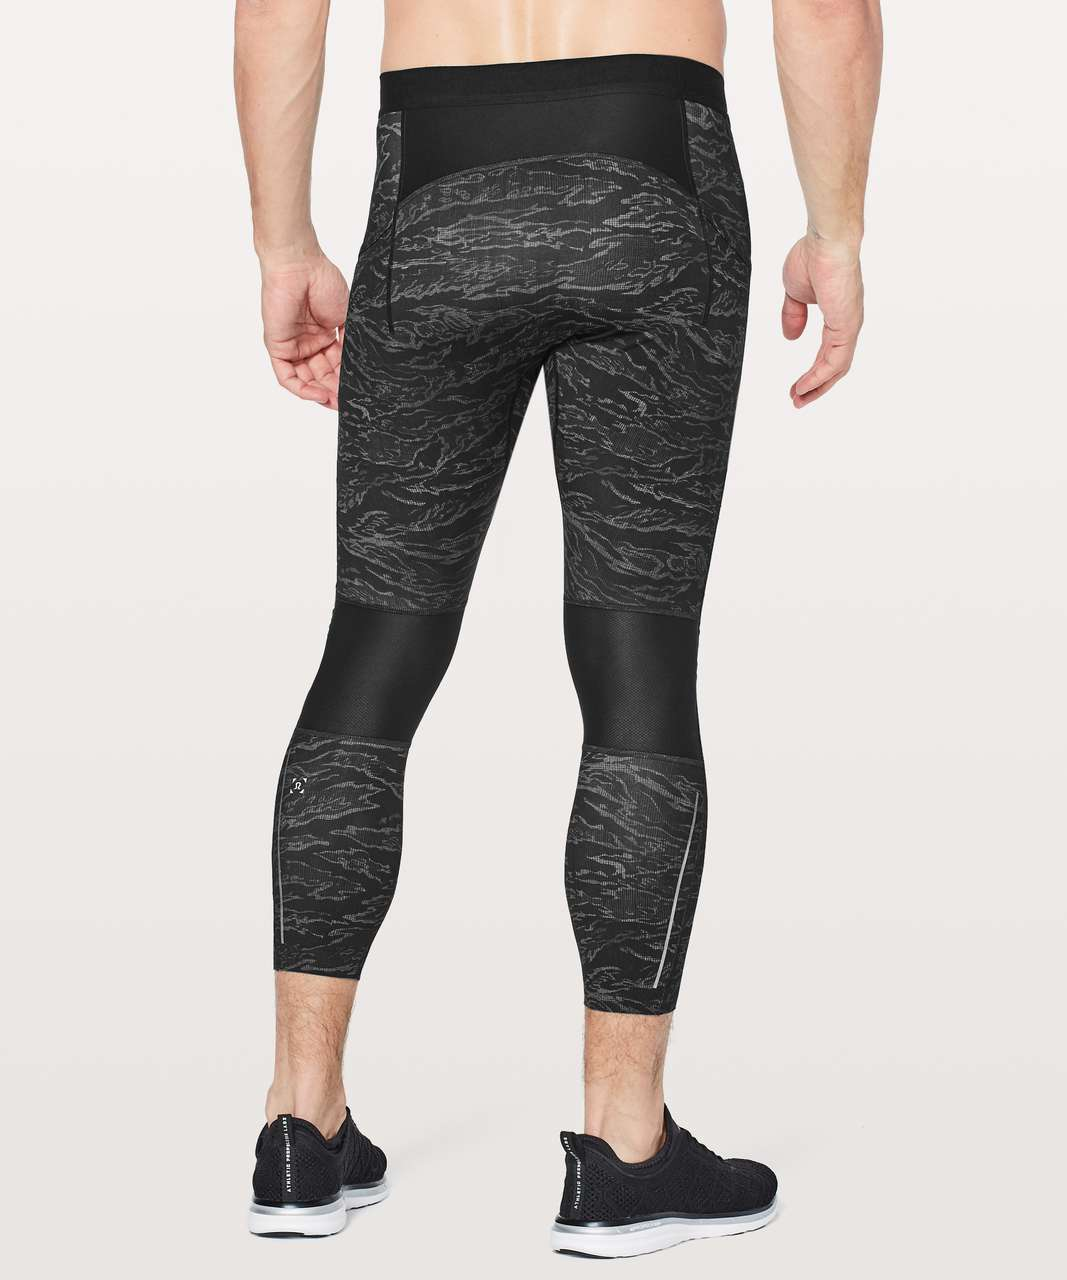 "Lululemon Surge Light 3/4 Tight *Side Pockets 23"" - Tiger Camo Multi Black"